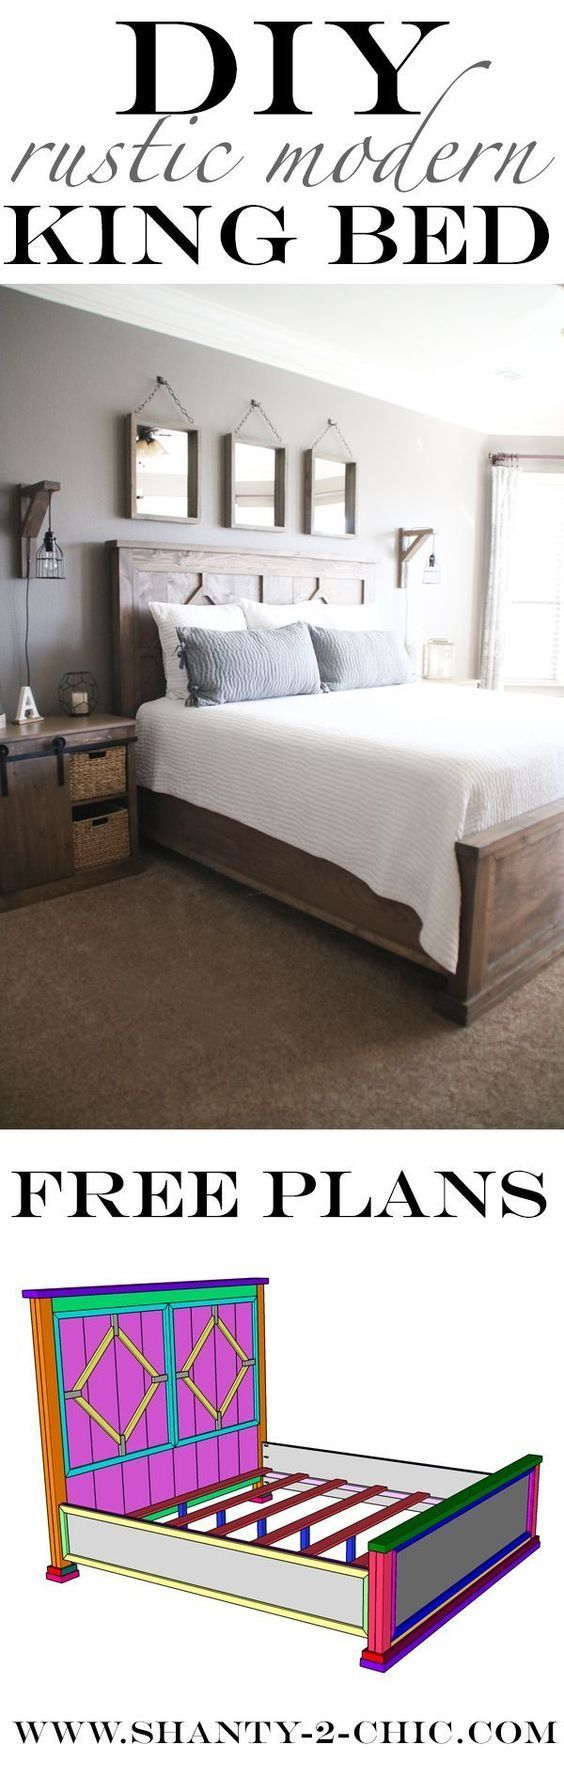 I built this 4-piece DIY Rustic Modern King Bed for less than $300 in lumber! Free easy-to-follow plans at http://www.shanty-2-chic.com Rustic Bed, DIY Bed, King Bed DIY Furniture, Free Building Plans, DIY Bed